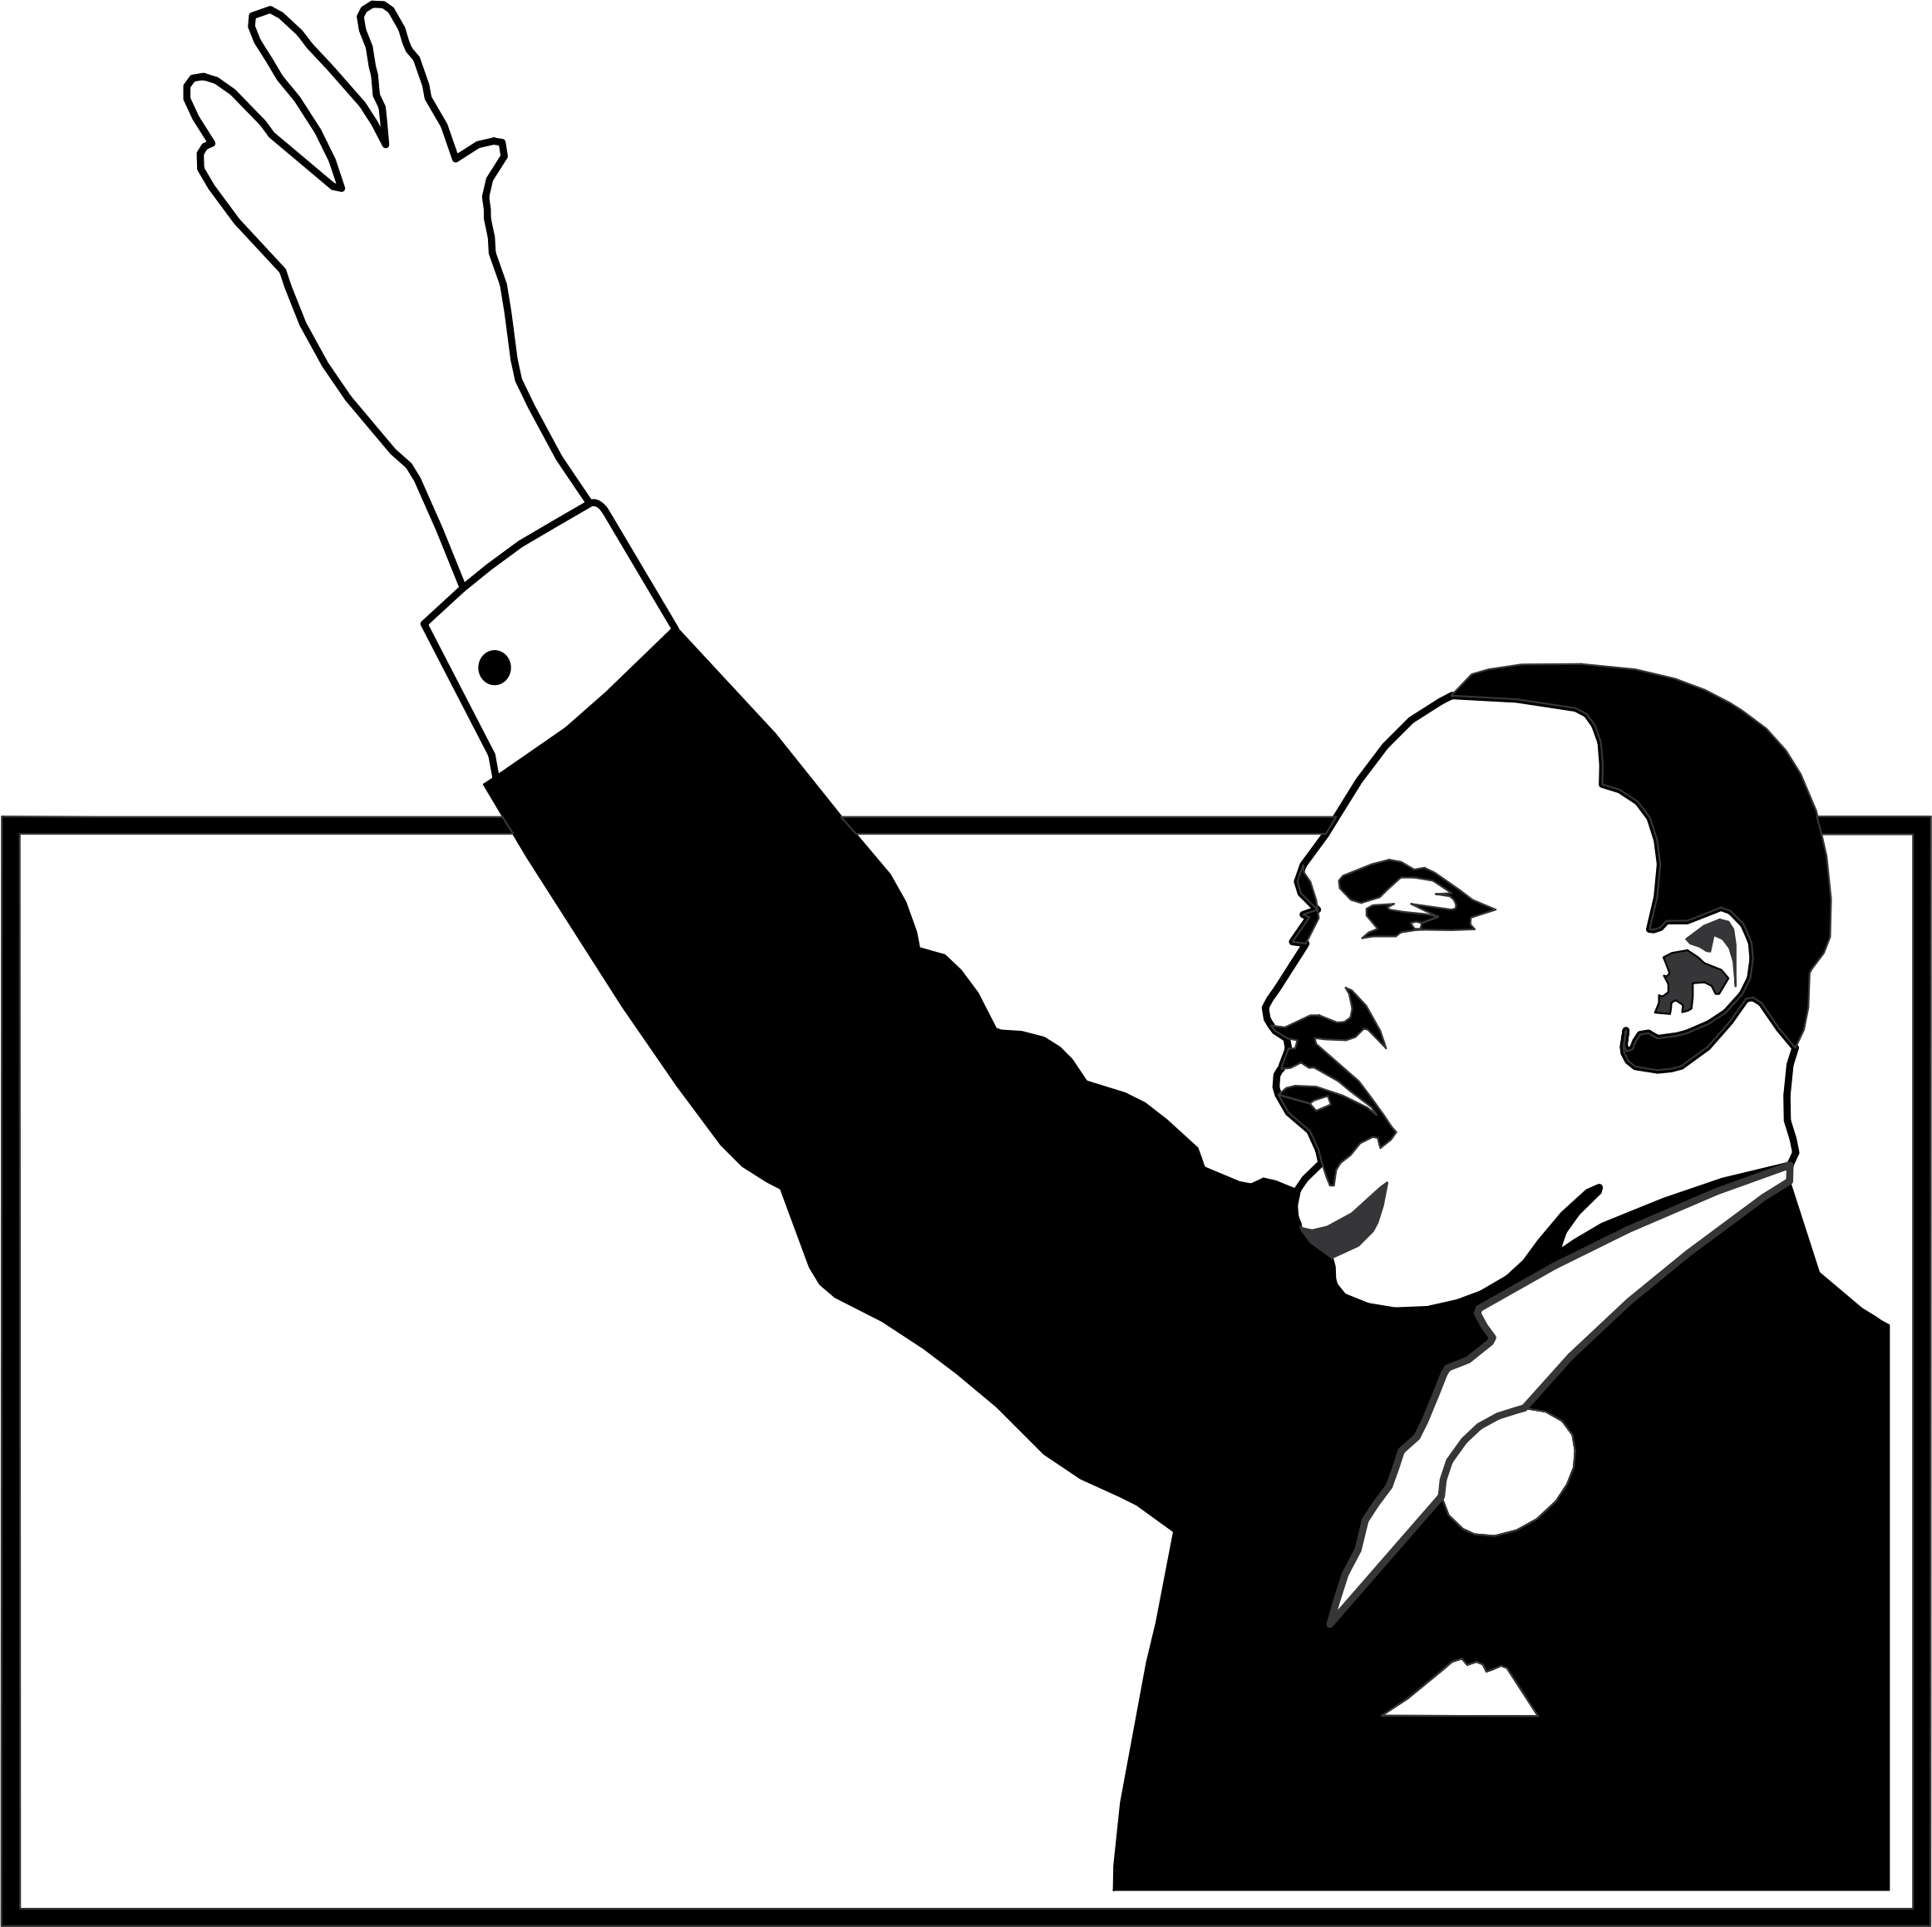 Martin luther king png. Icons free and downloads